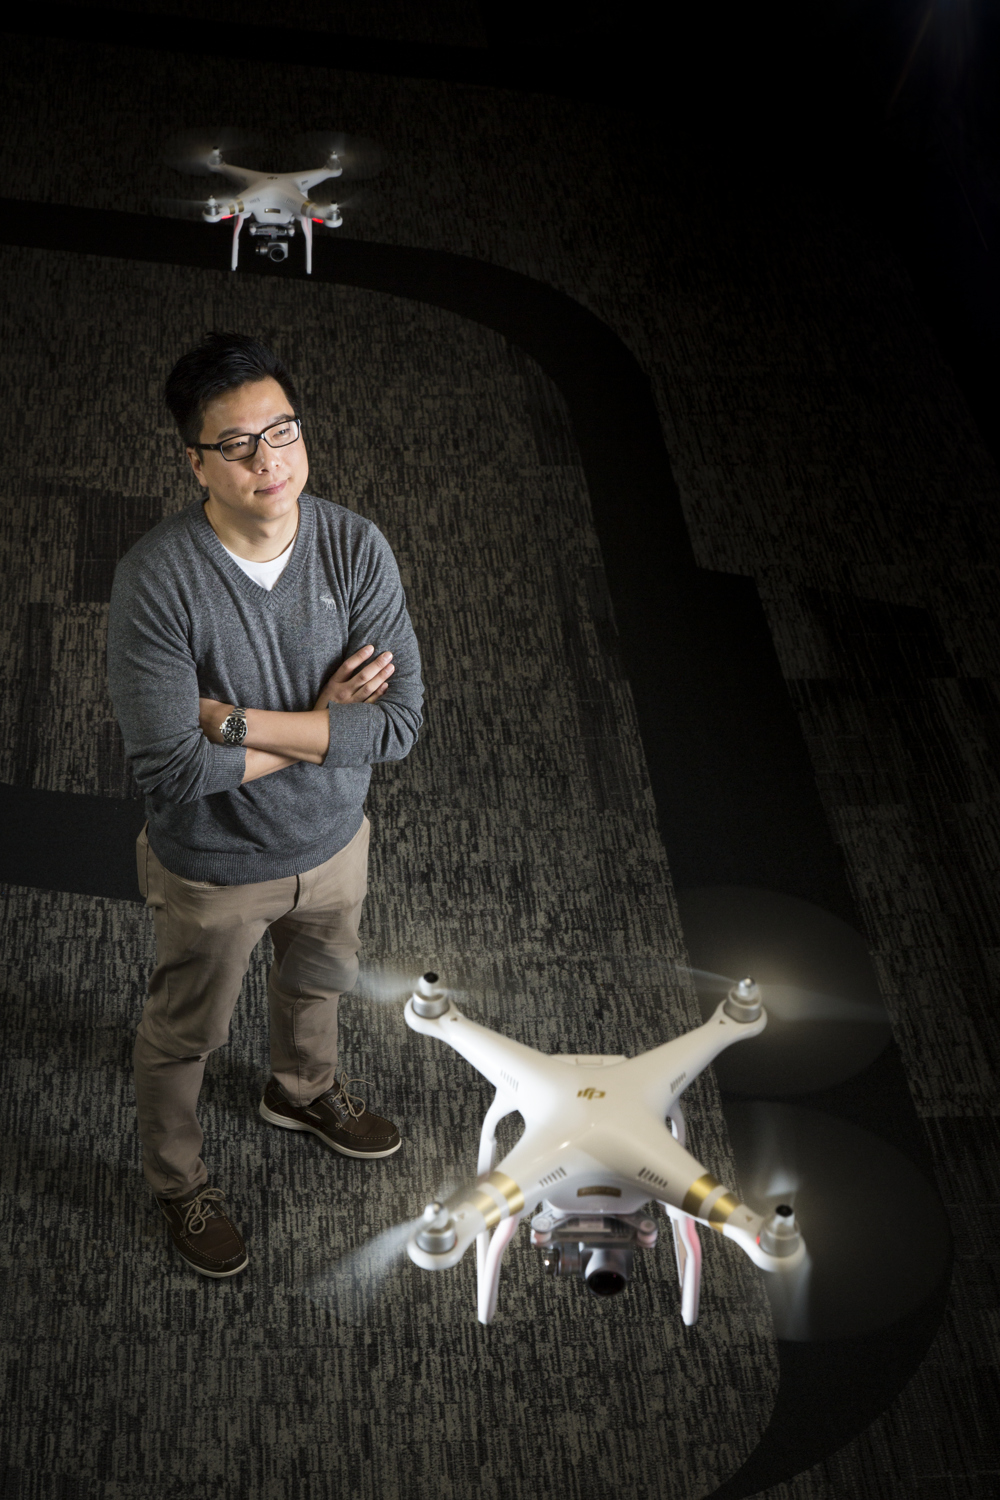 Paul Pan, Senior Product Manager at DJI for Wired UK